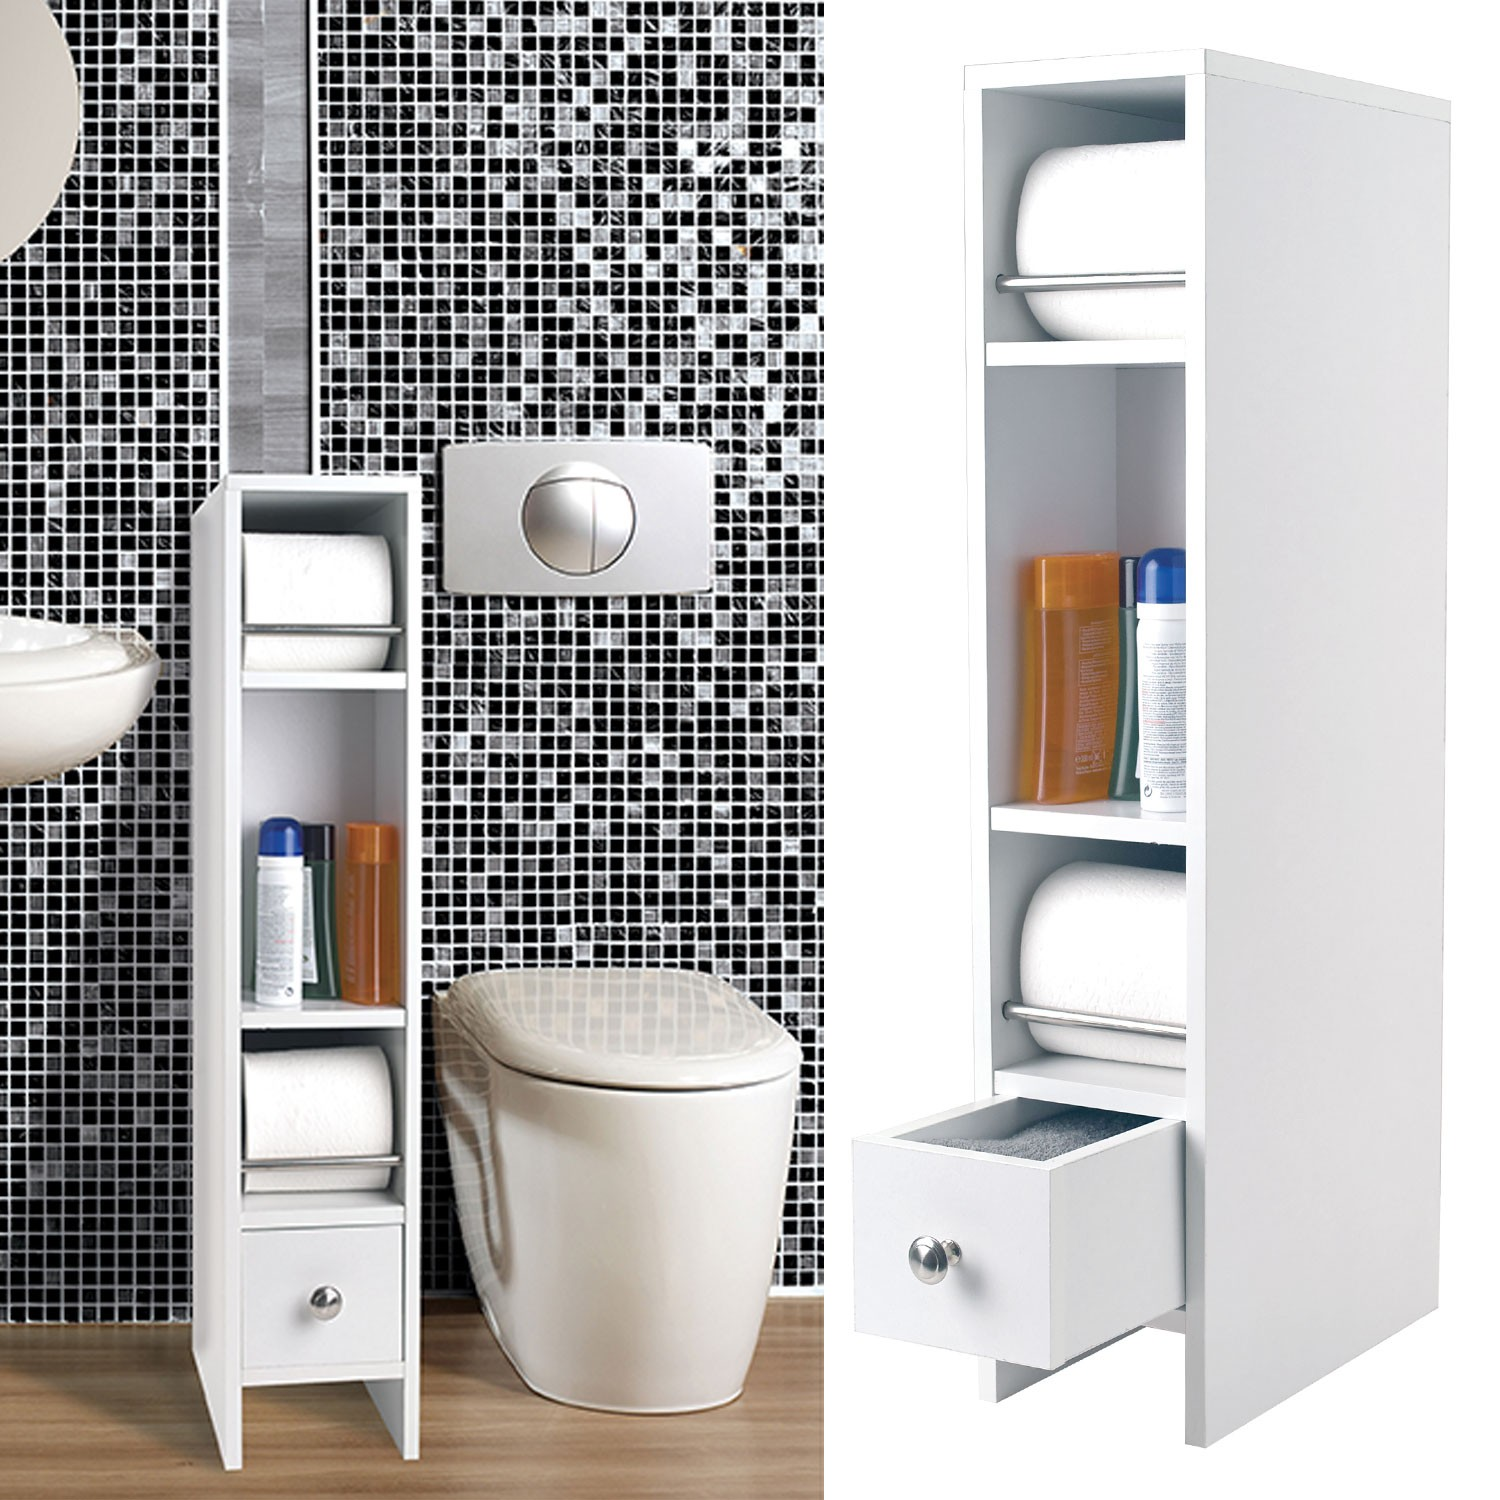 meuble rangement wc distributeur rouleaux meubles et am nagement. Black Bedroom Furniture Sets. Home Design Ideas